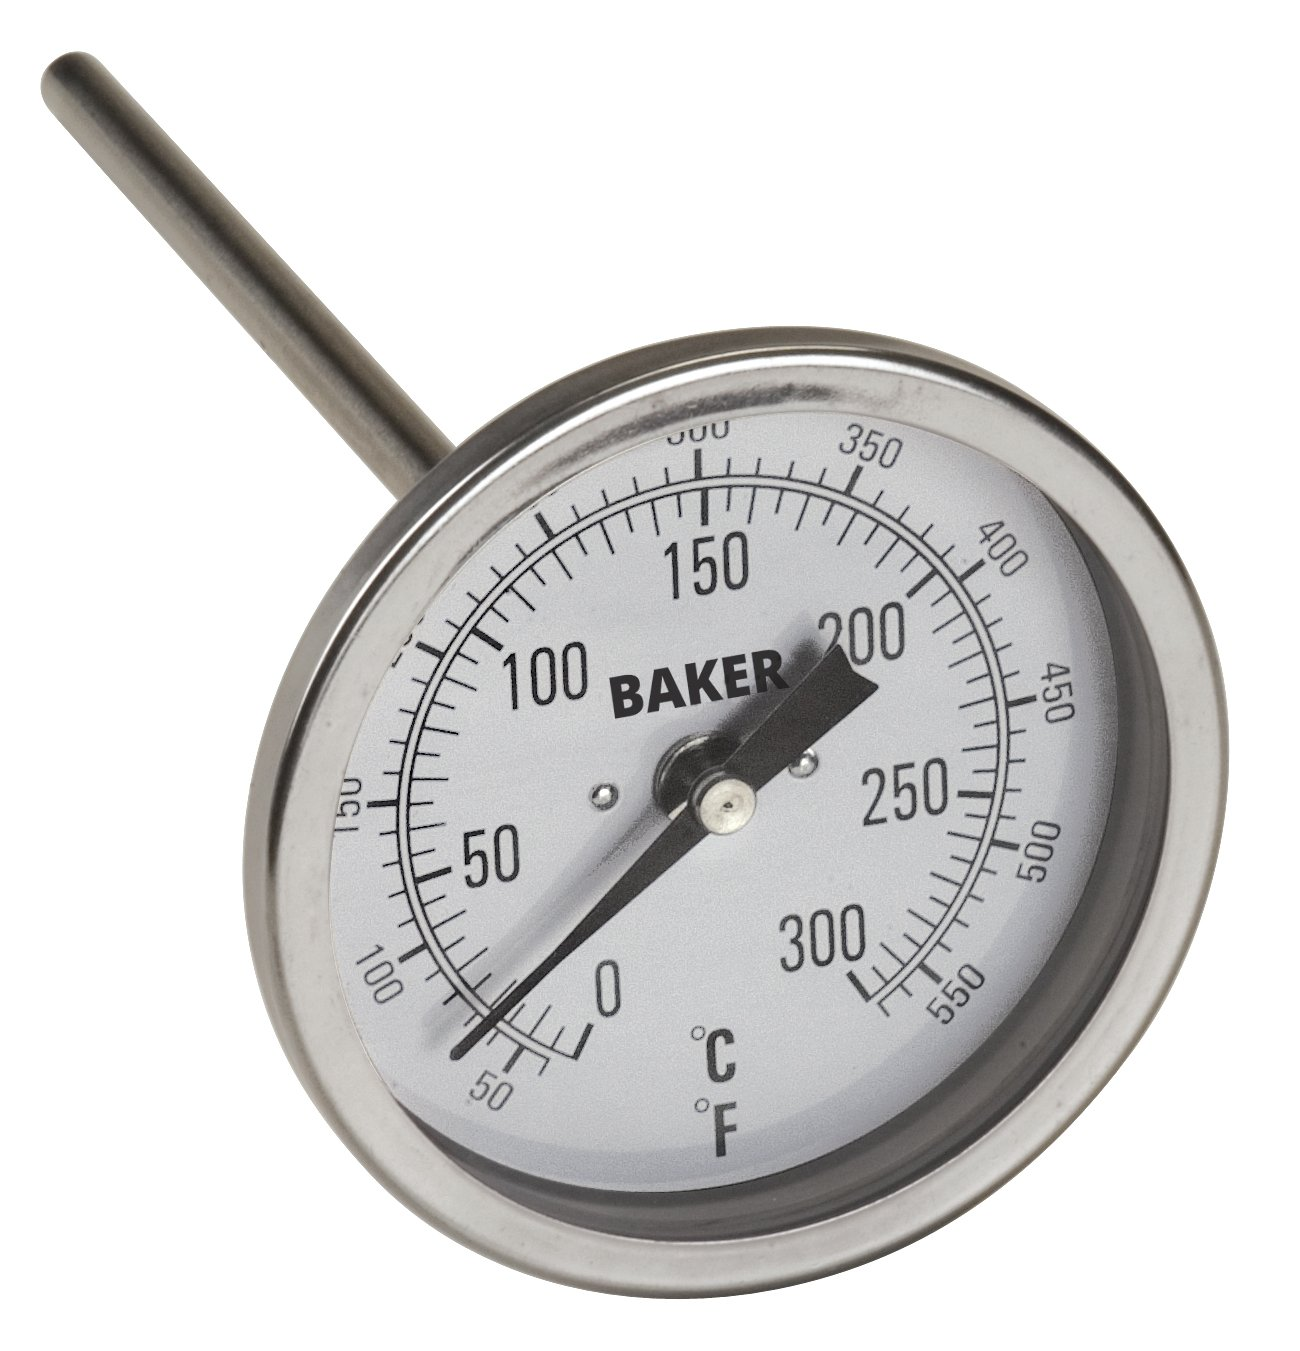 Baker Instruments T300 Series Stainless Steel Bi Metal Thermometer 50 to 550°F (0 to 260°C), 4'' Stem, 1/2'' NPT Straight Connection, 3'' Dial